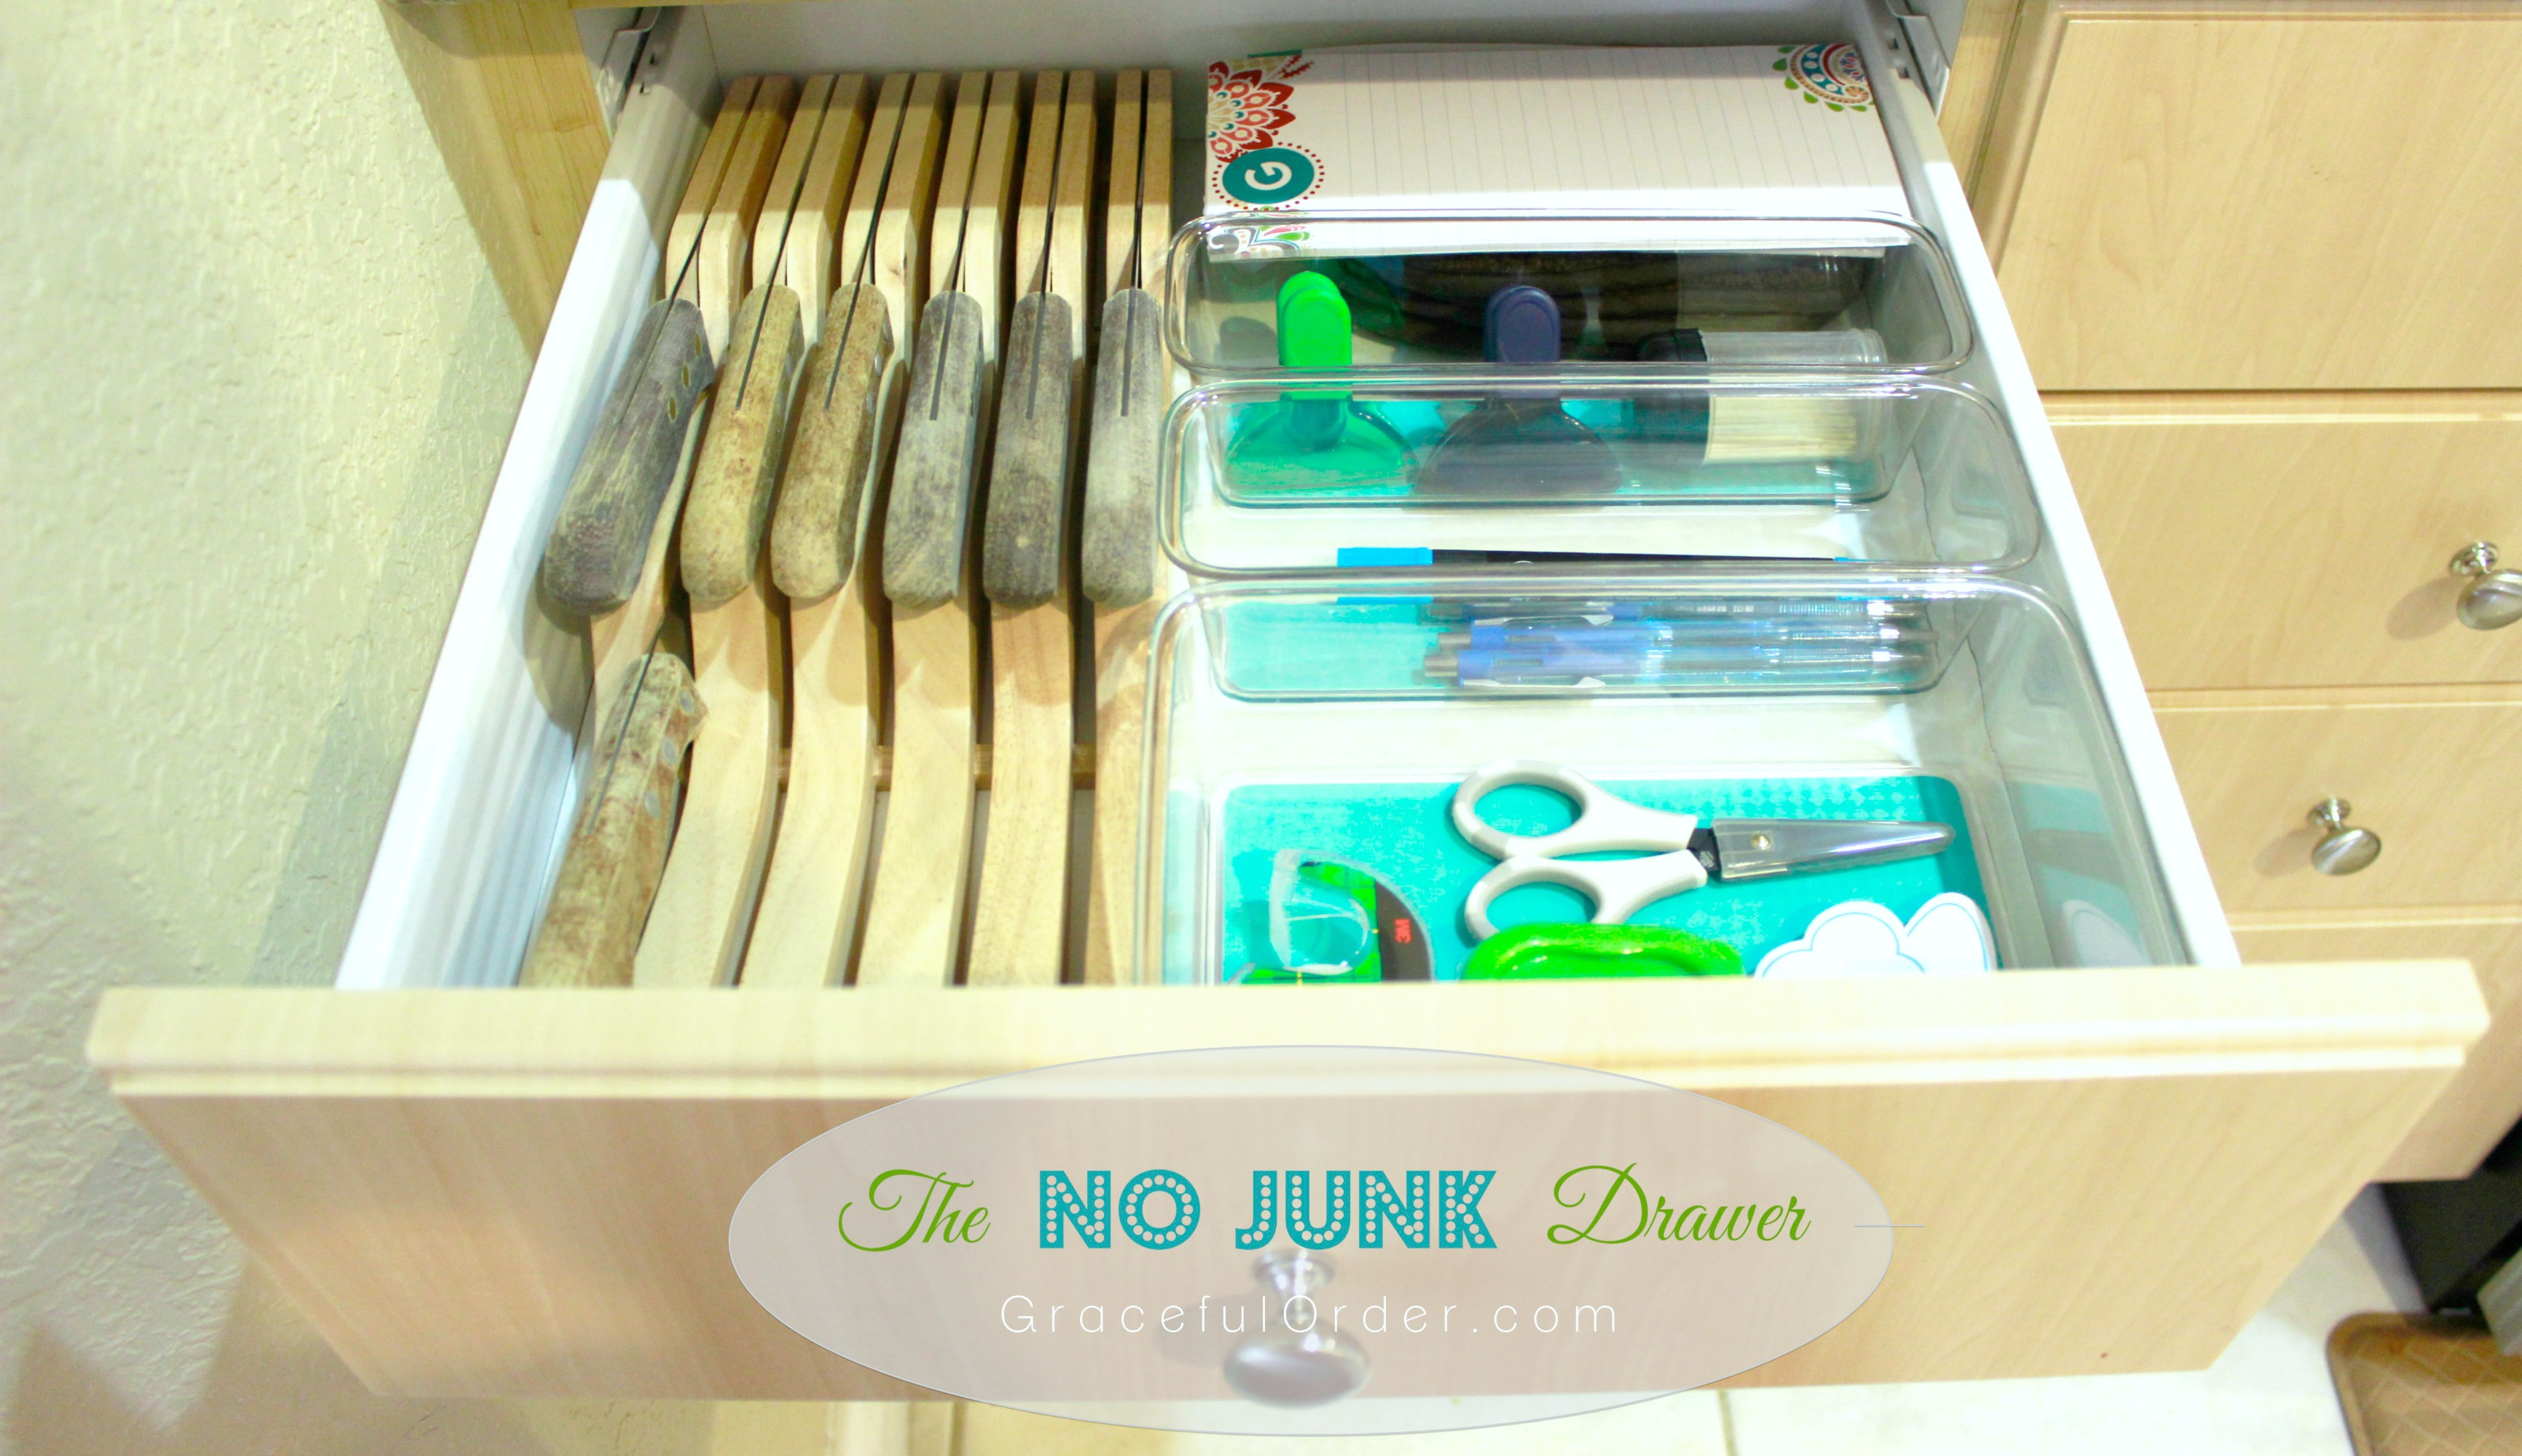 Organizing kitchen cabinets and drawers - Organized Home Kitchen Cabinets And Drawers